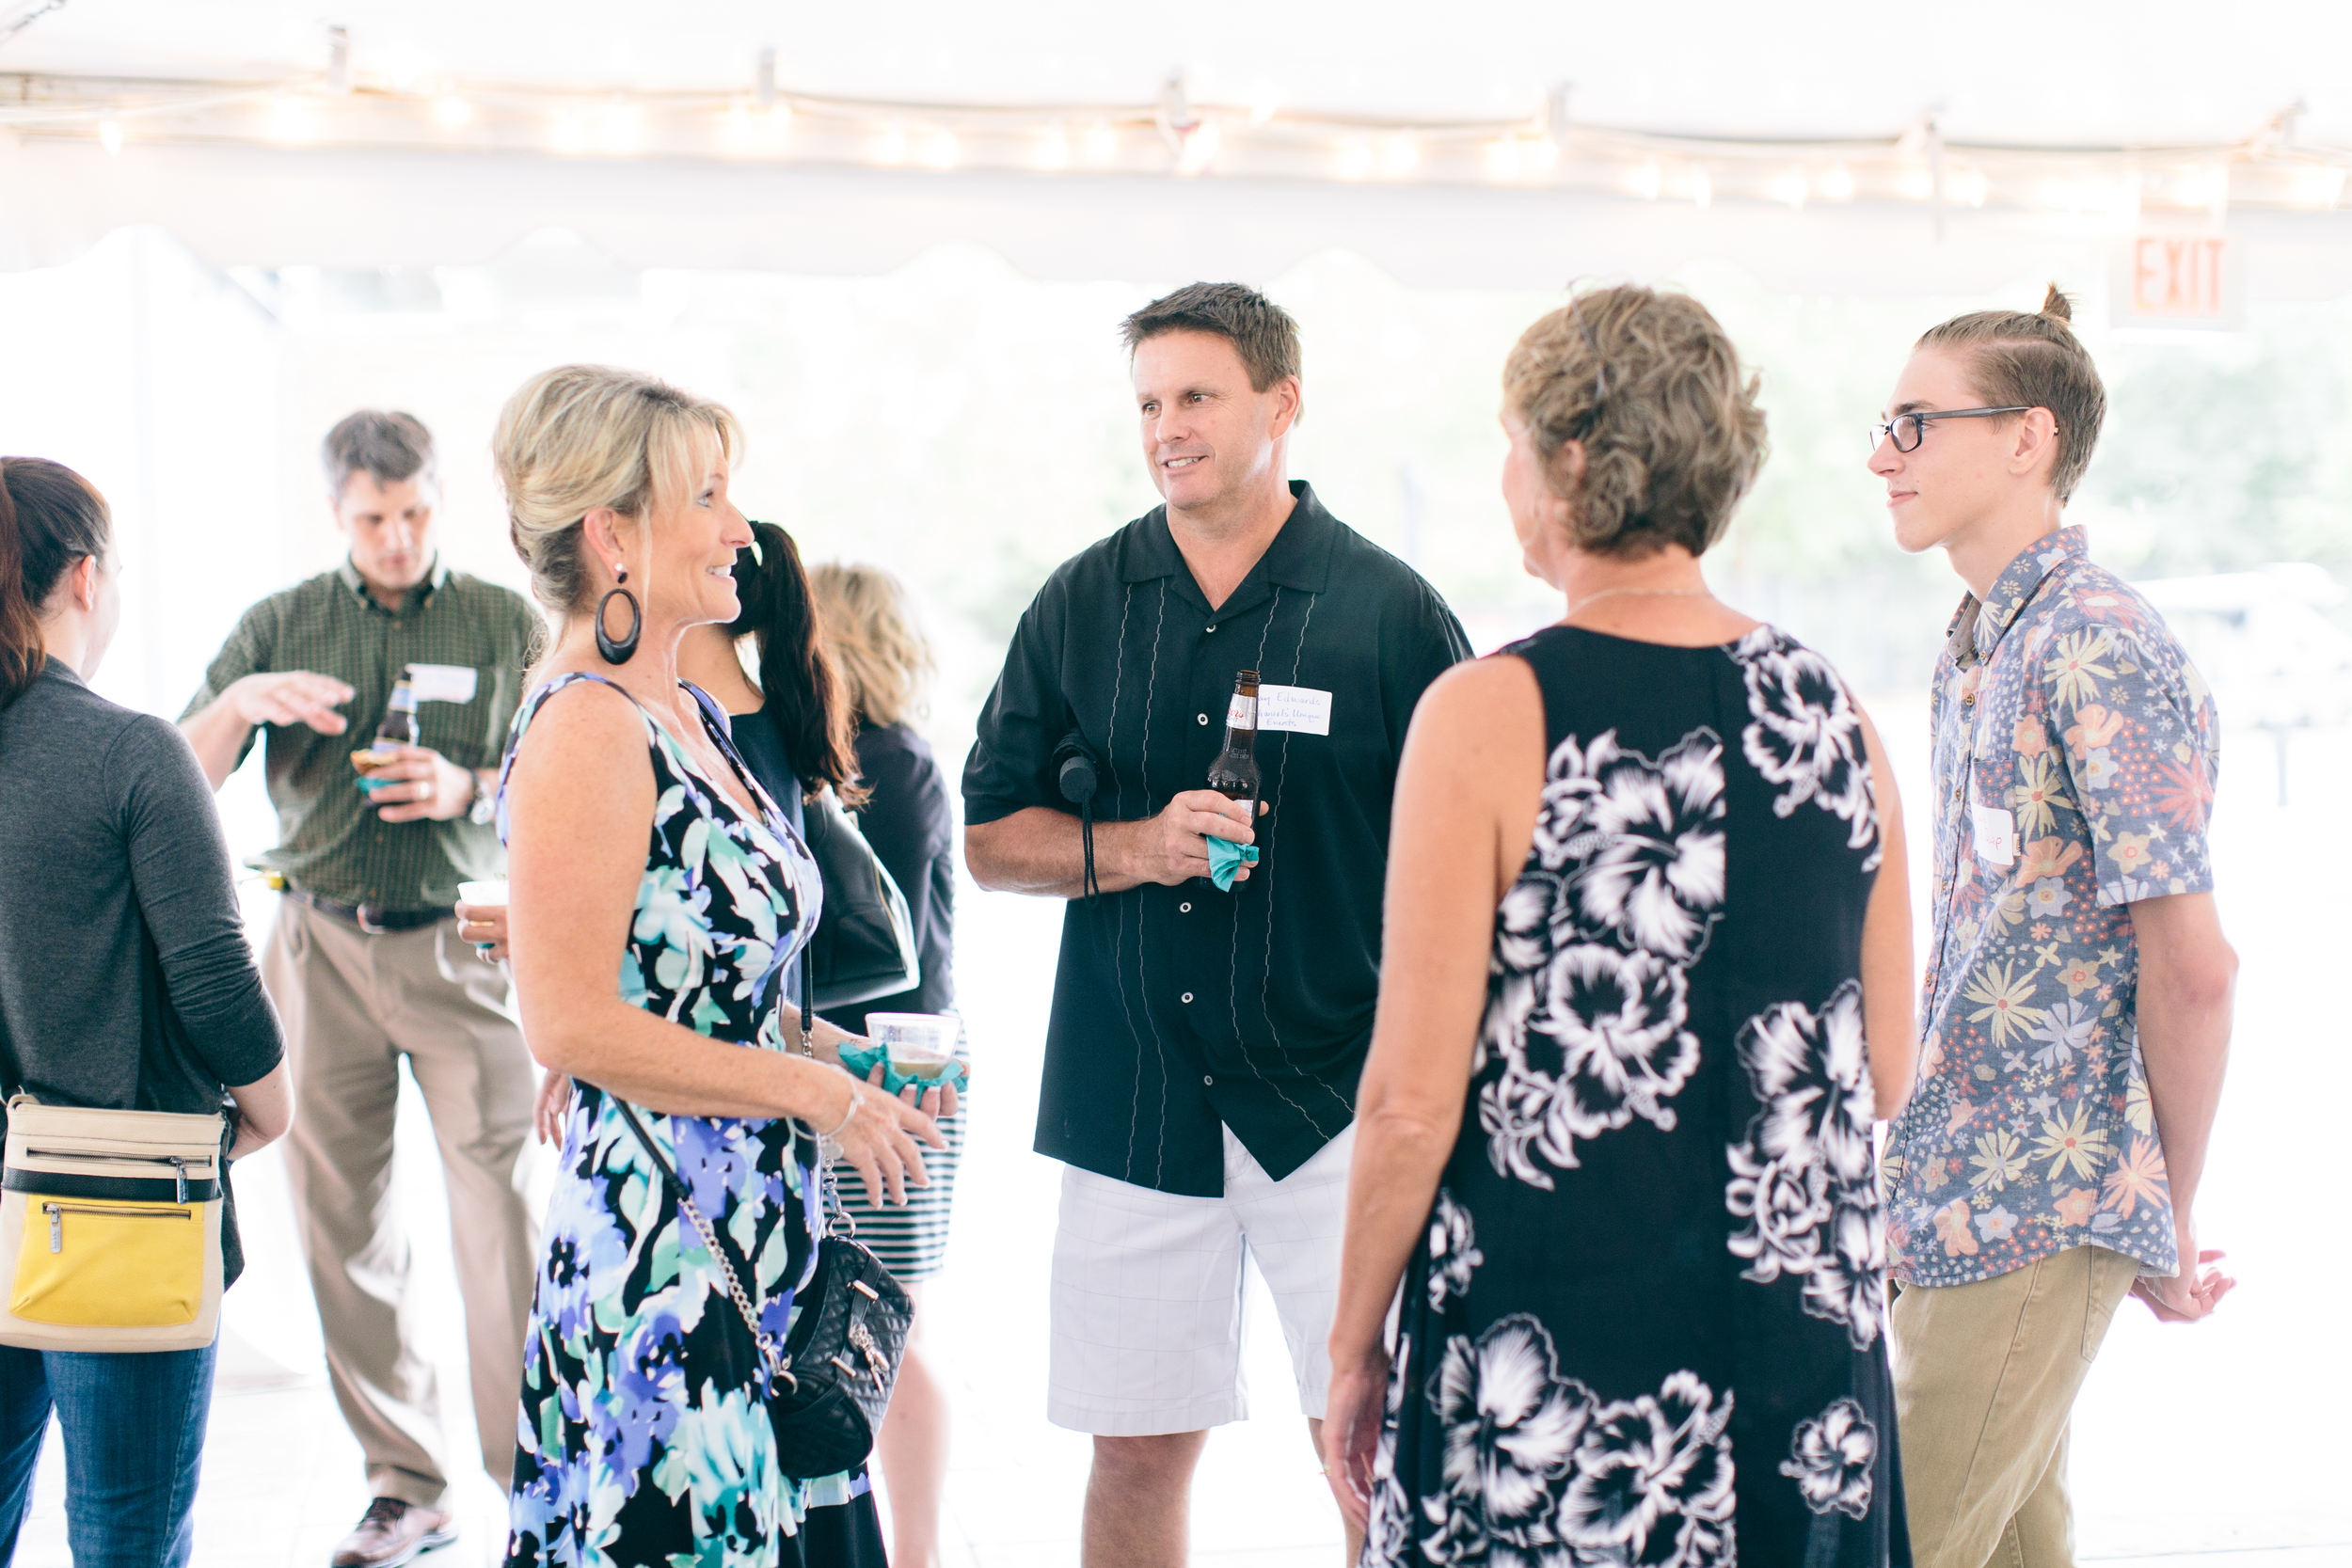 Richmond Weddings hosts monthly industry networking mixers as seen here.